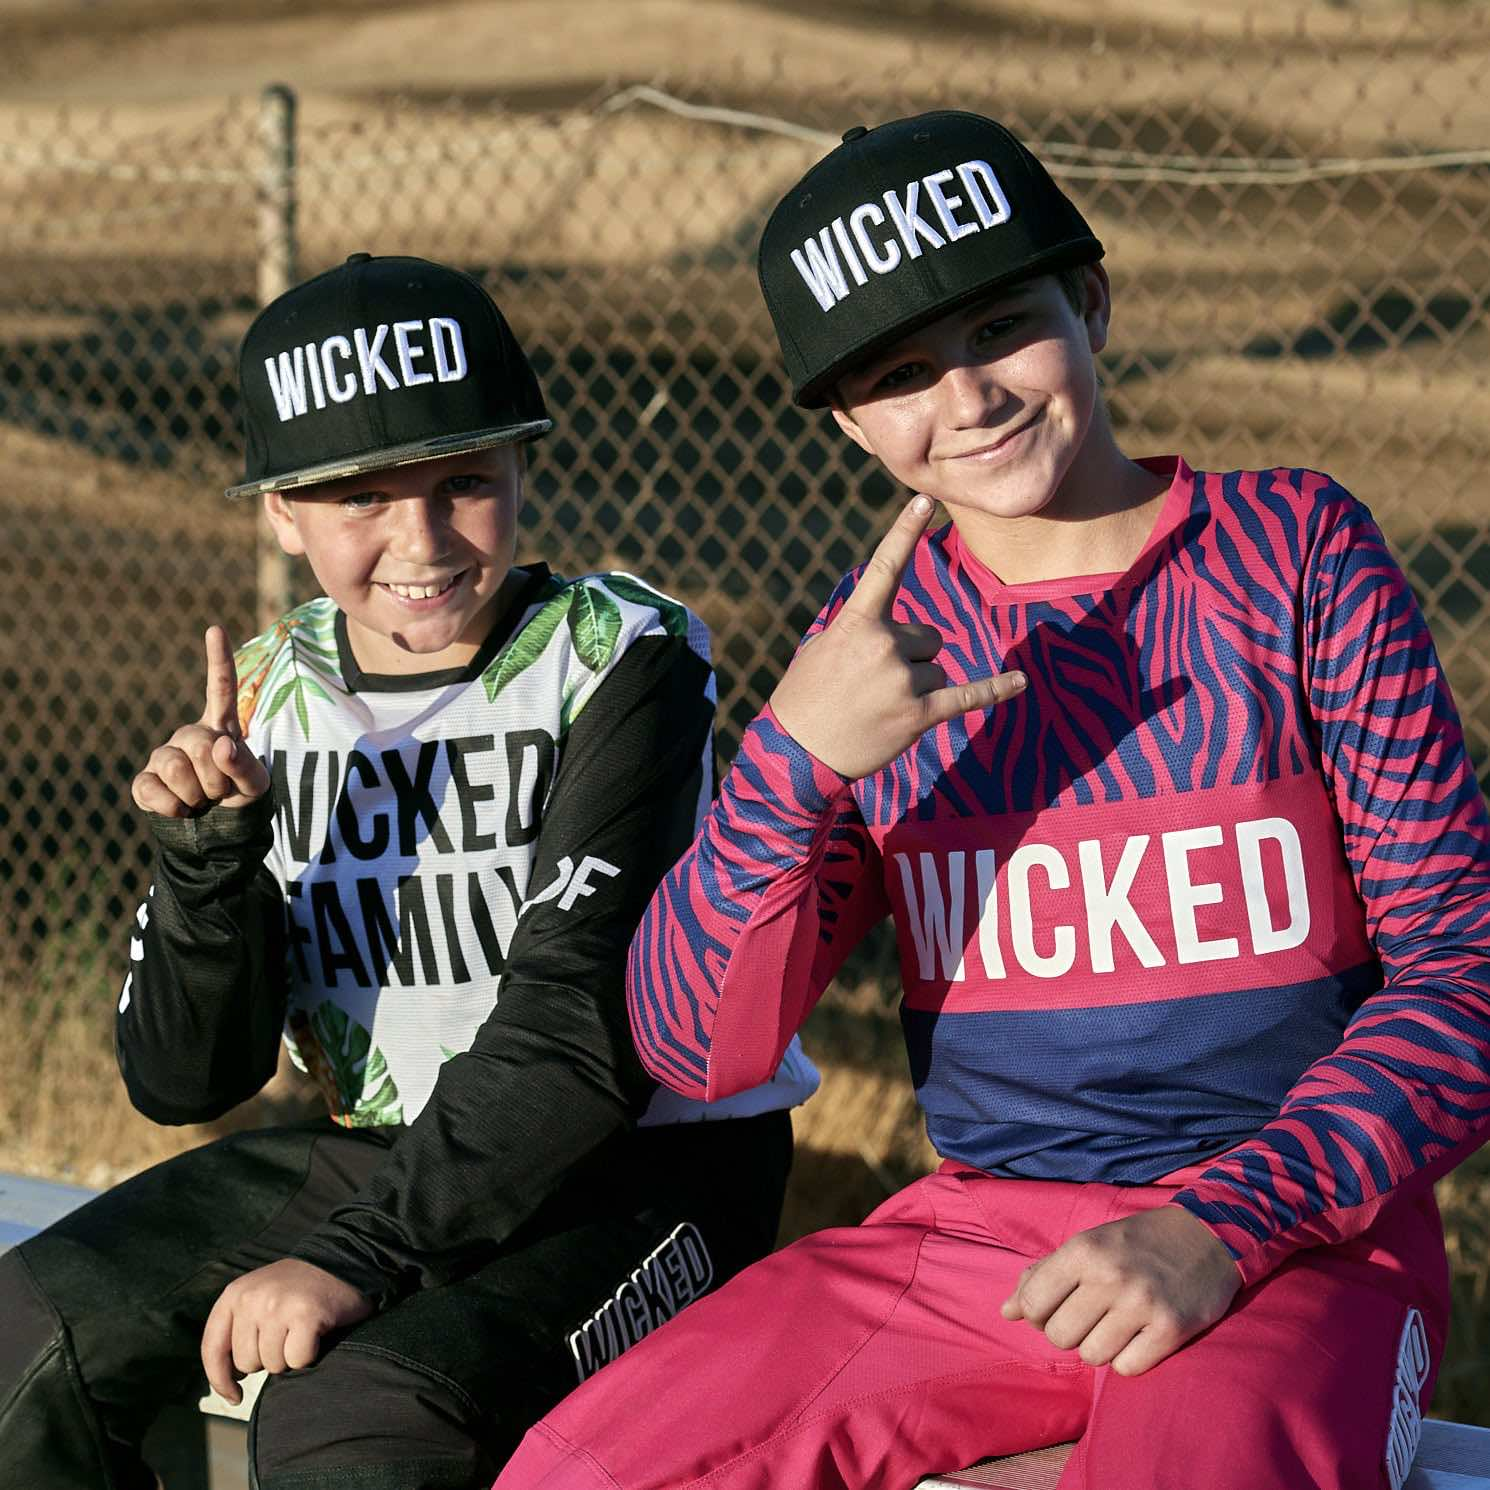 Wicked MX kids